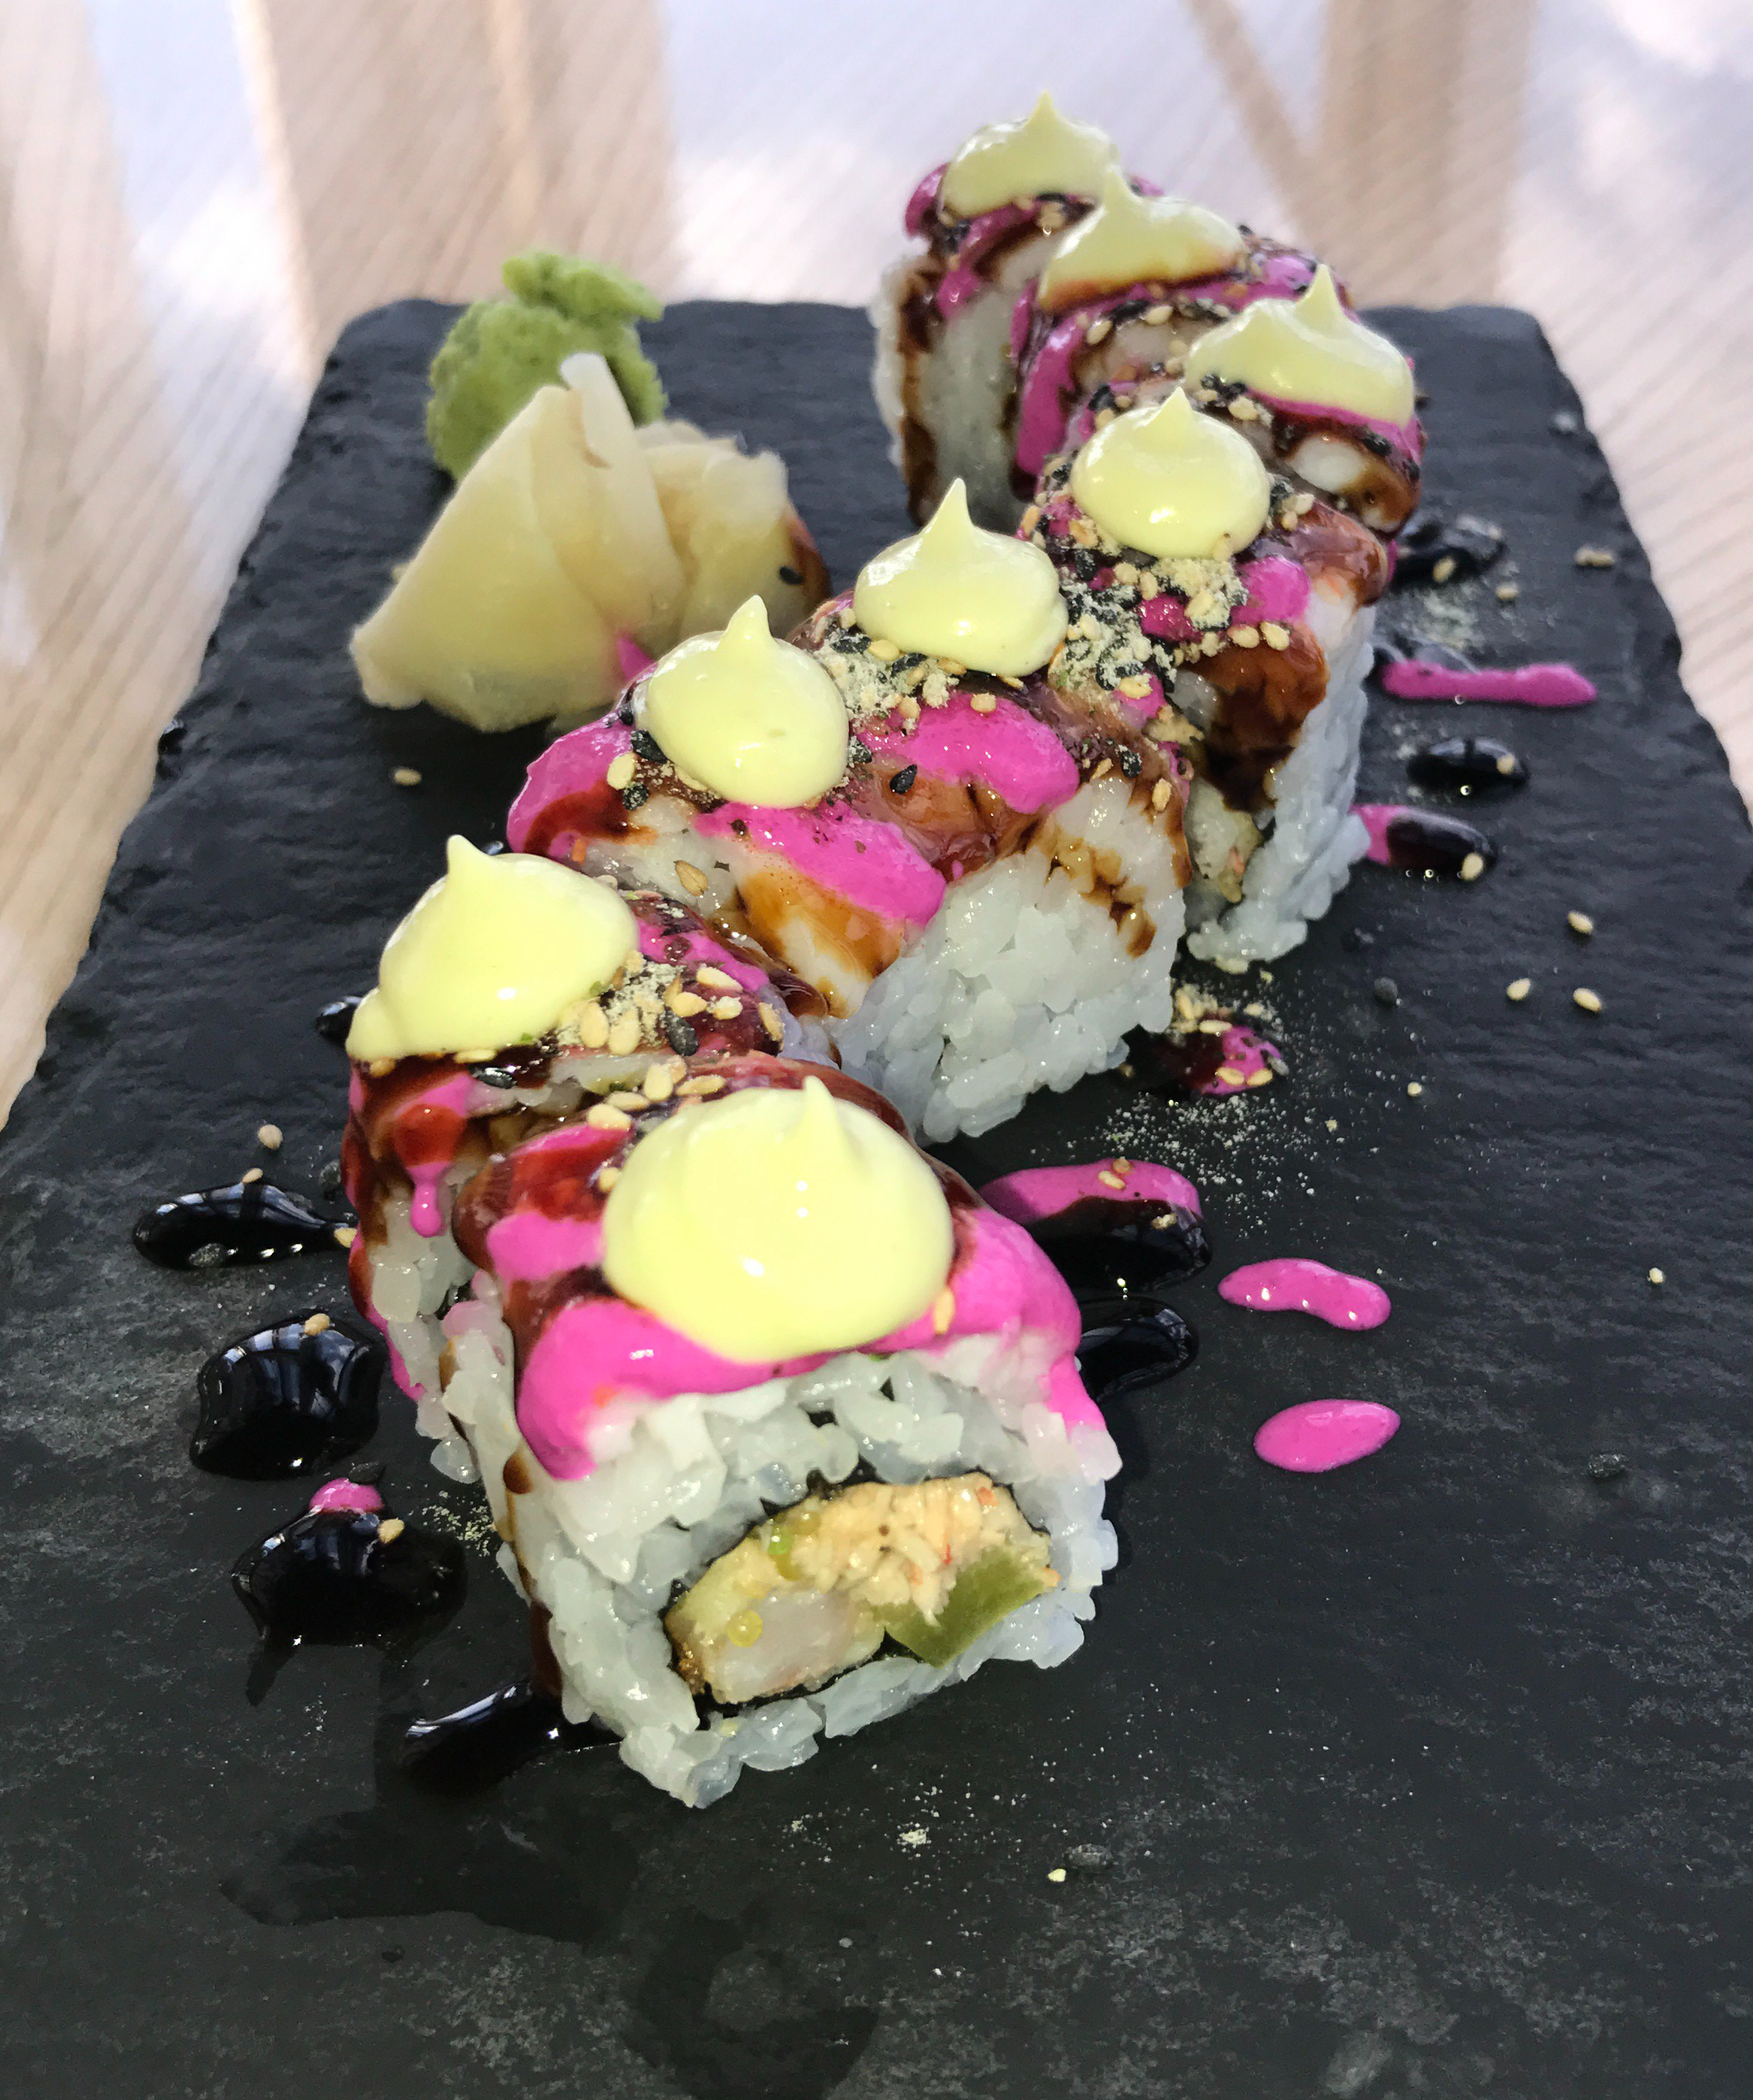 Top 10 Sushi Dishes in London | Top 10 Restaurants in London 2017